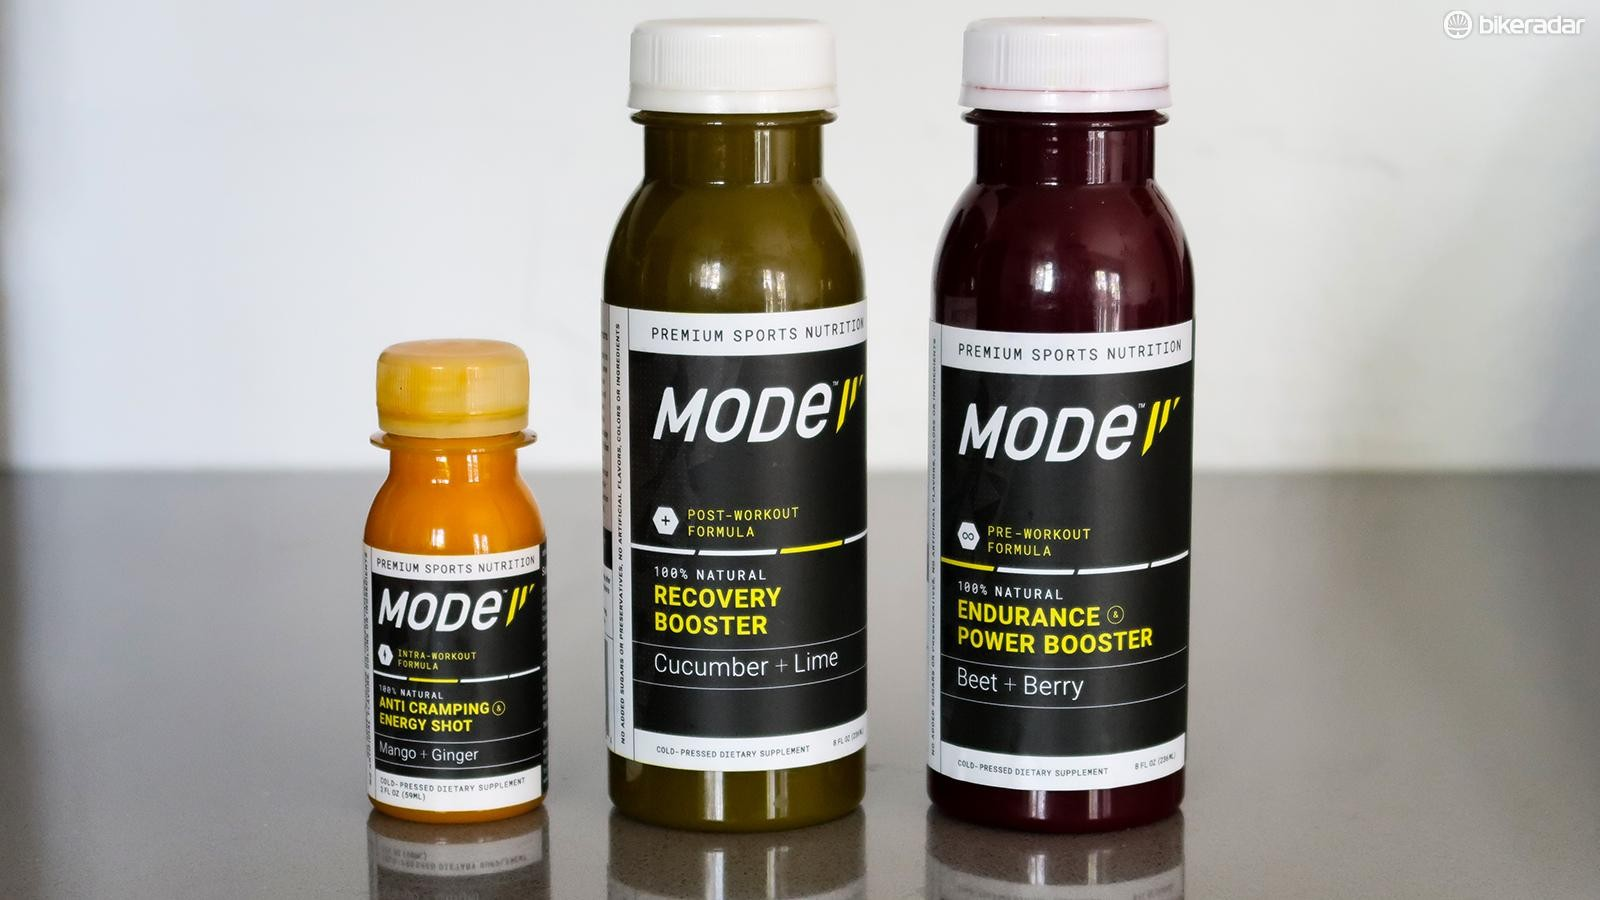 MODe's line of natural cold-pressed sports nutrition products